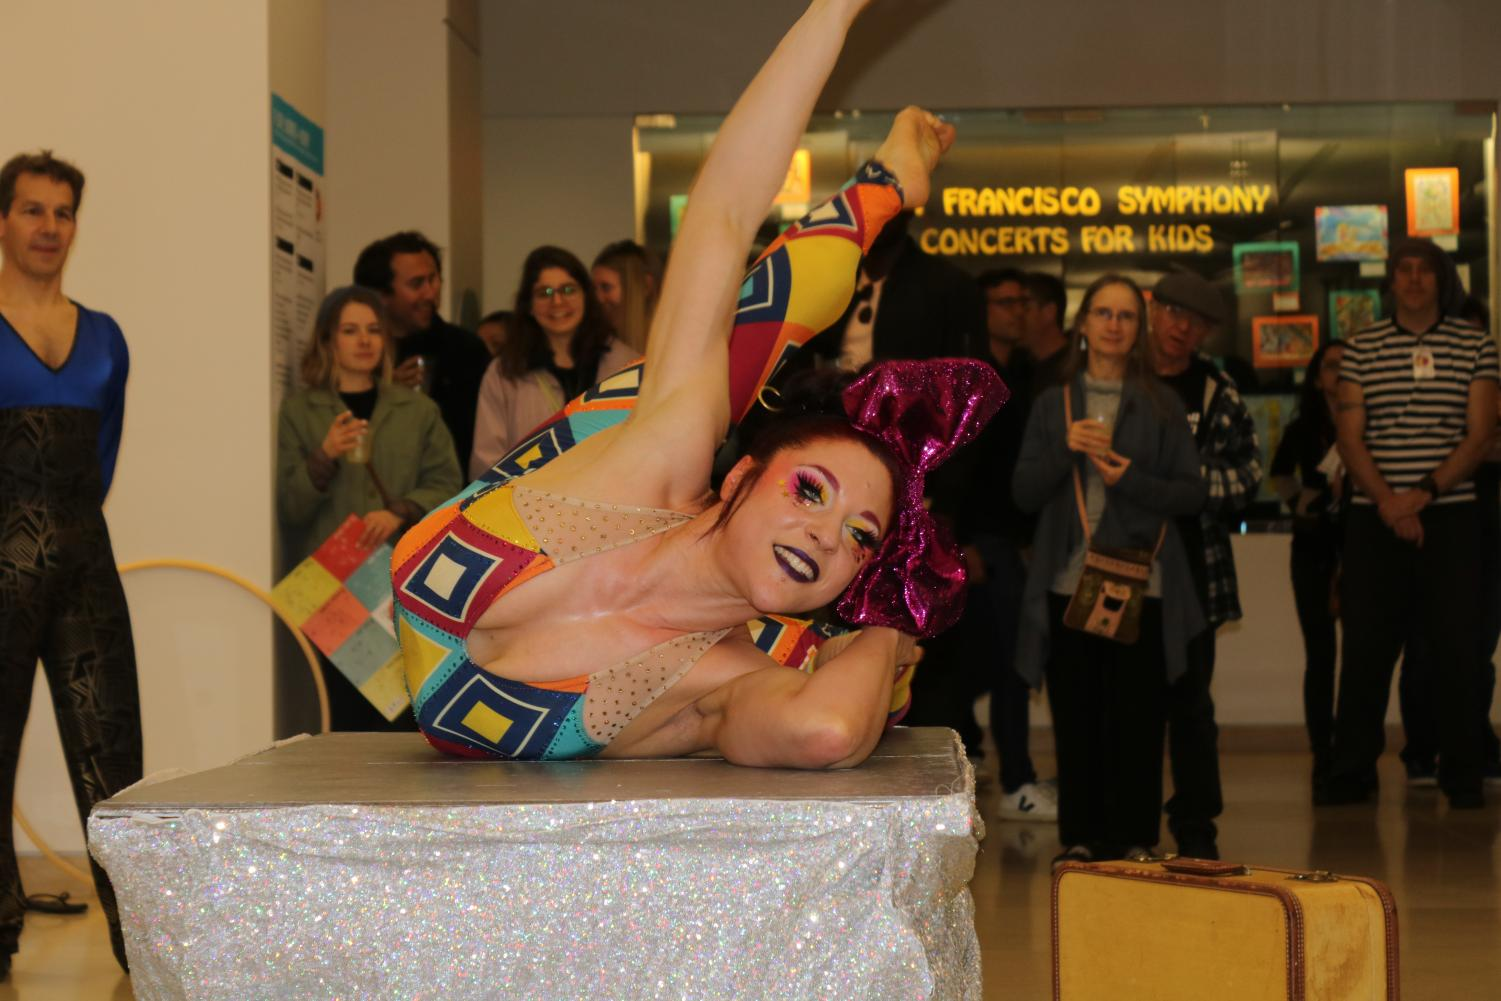 A vibrant contortionist positions herself elegantly as Night of Ideas attendees observe in awe.